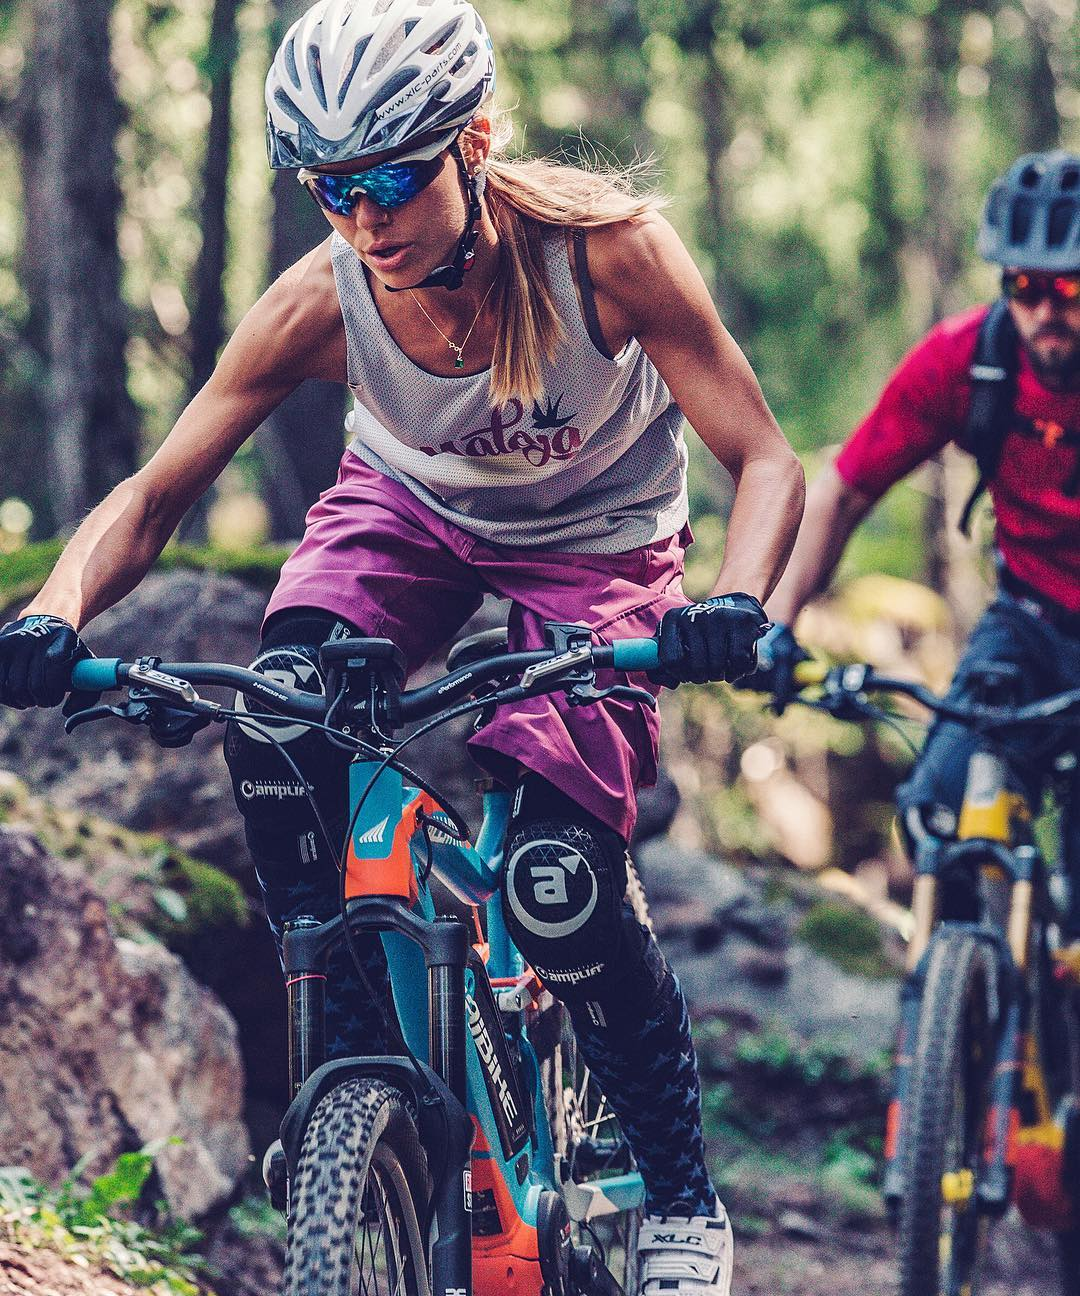 #eperformance modes. The great equalizer. In the same way as the handicap system in golf allows players of different levels to play together, so do ebikes allow riders of different skills and fitness levels to ride together. Now who is fastest? 😛 #haibike #XDURO #MTB #Emtb